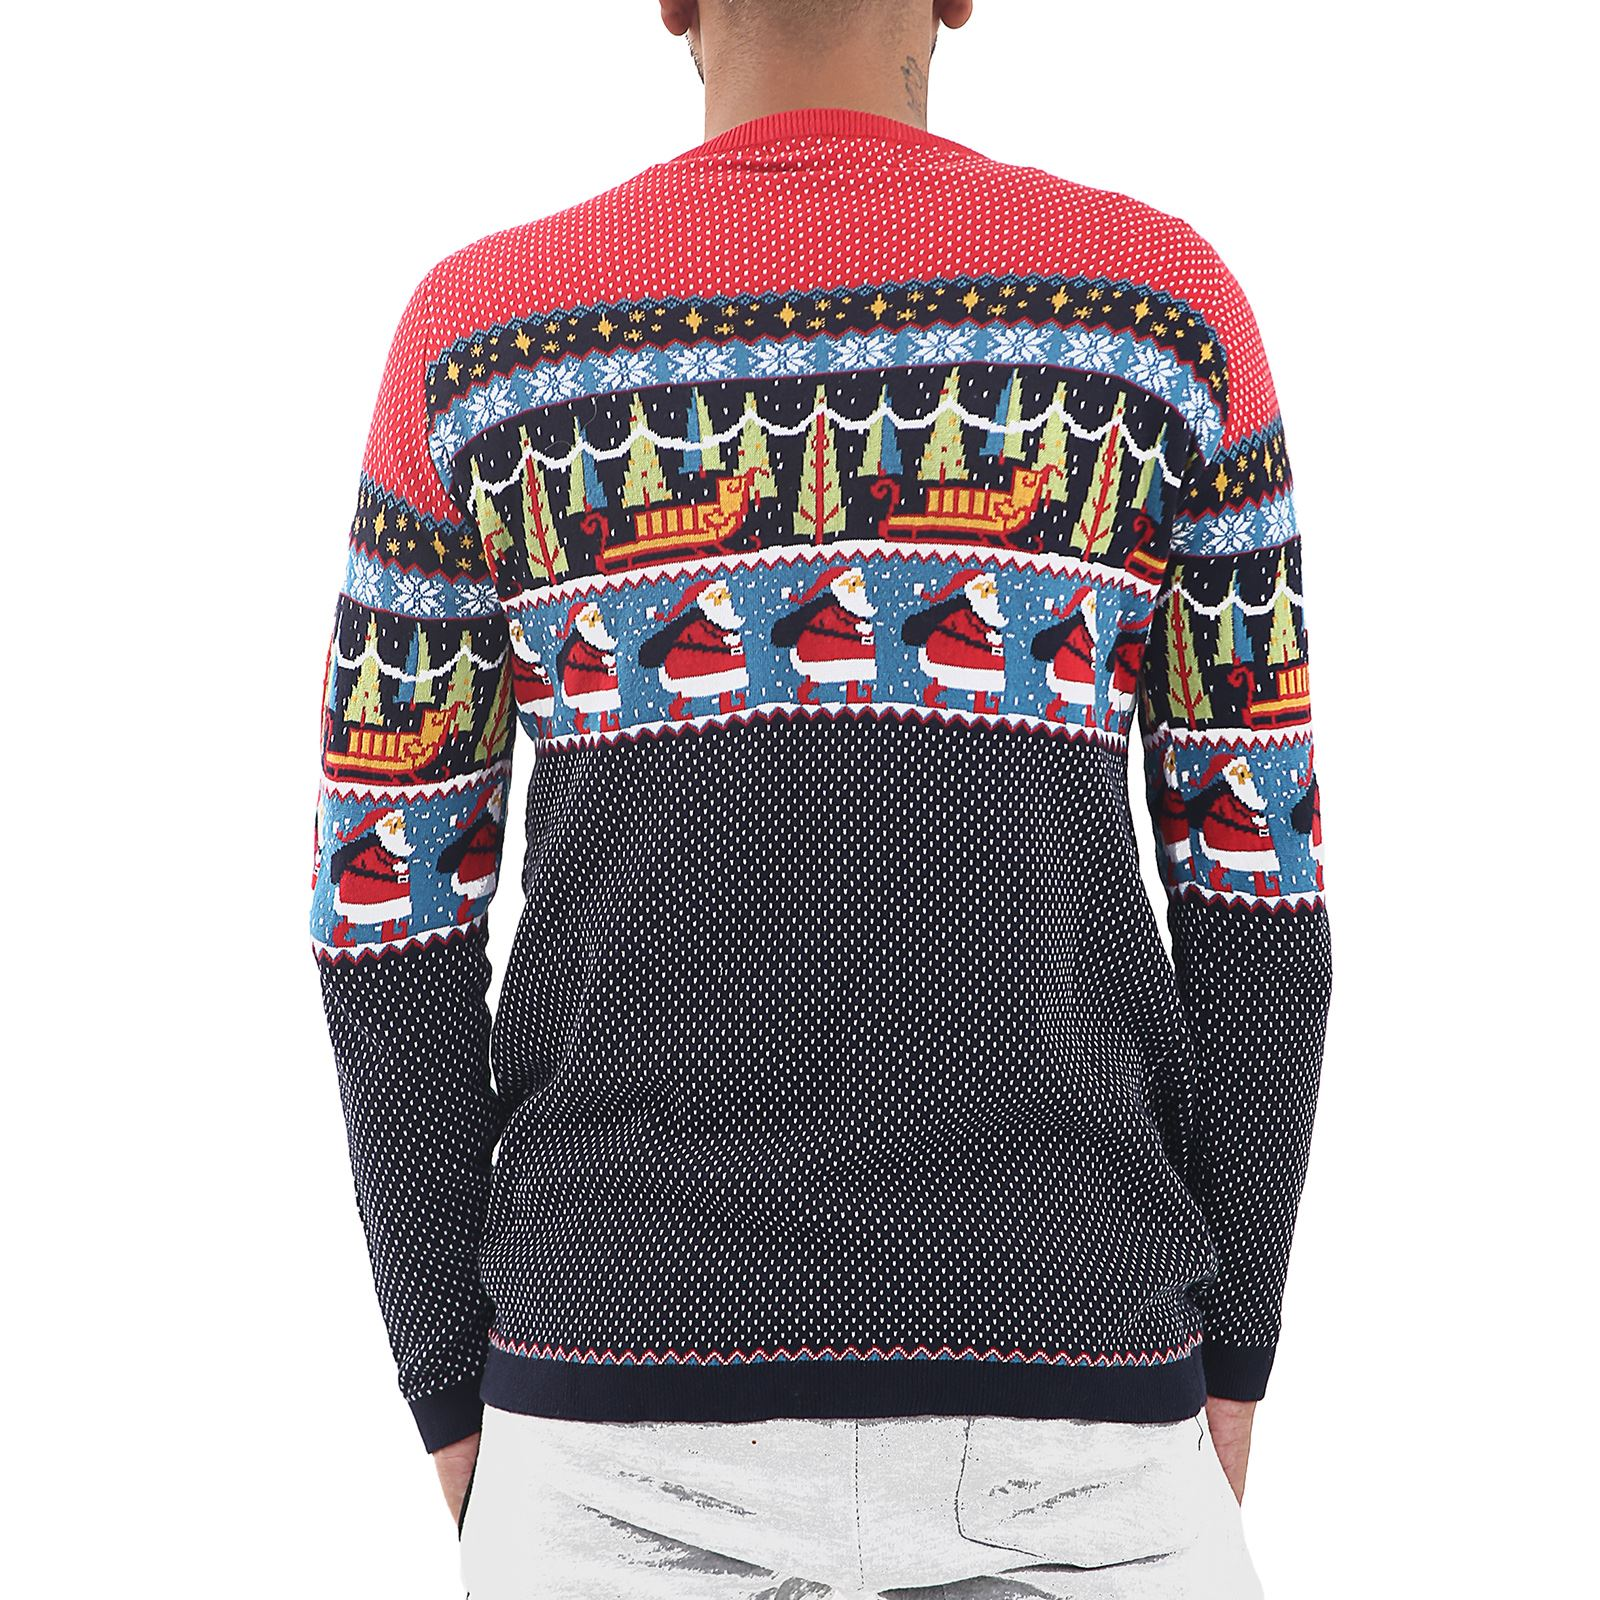 Mens-Ladies-Ex-Store-Matching-Christmas-Sweater-Jumper-Sweatshirt-Xmas-His-Hers thumbnail 10